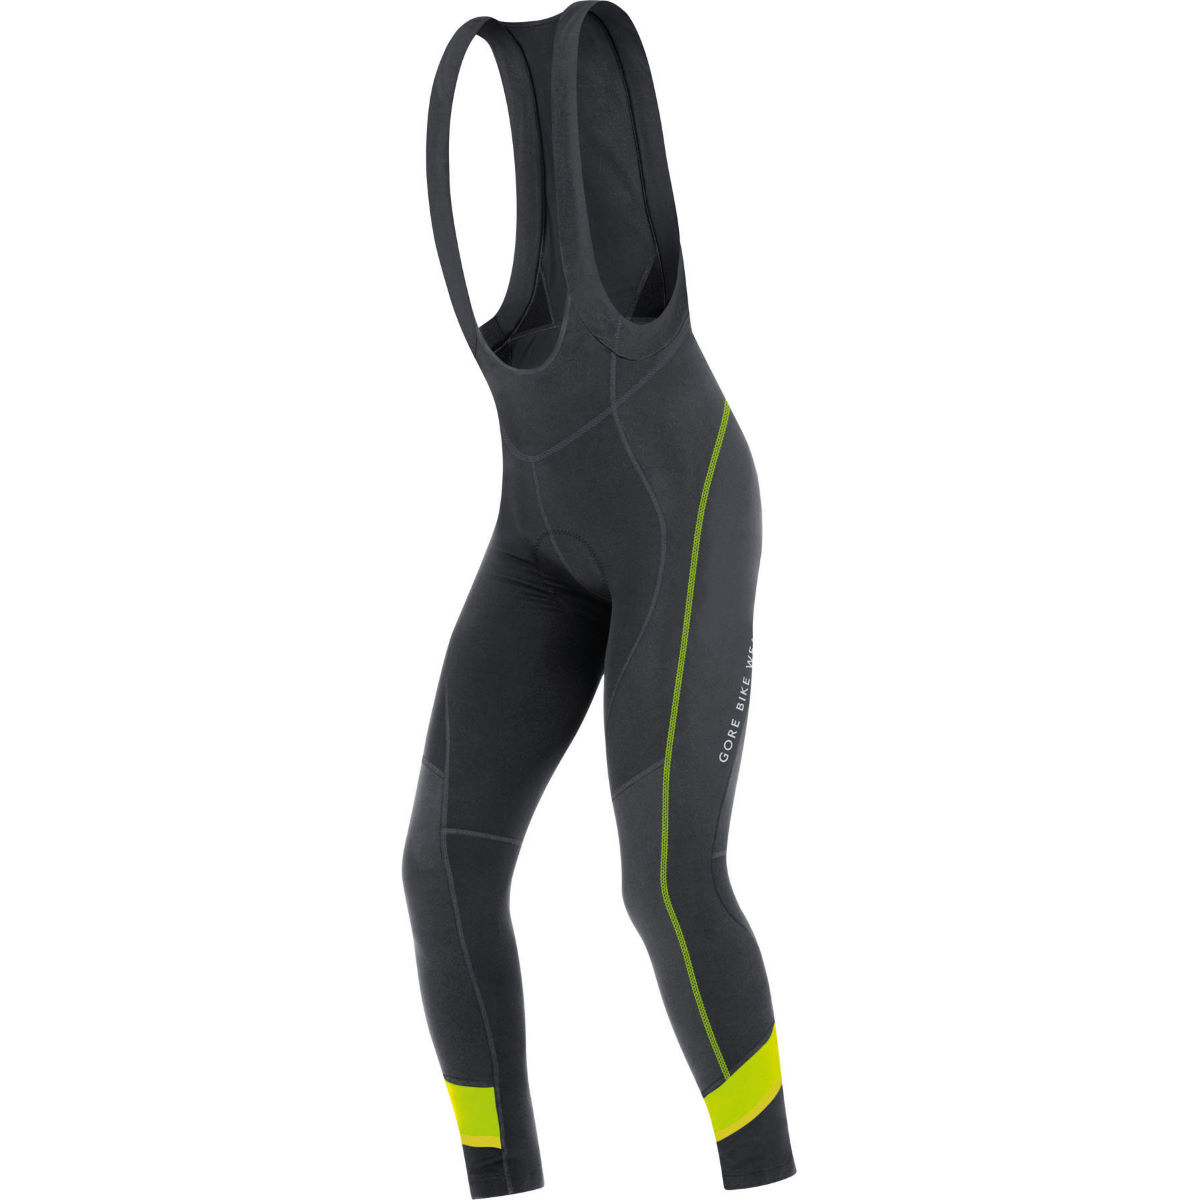 Cuissard long à bretelles Gore Bike Wear Power 3.0 Thermo+ - S Noir/Jaune Cuissards longs de vélo